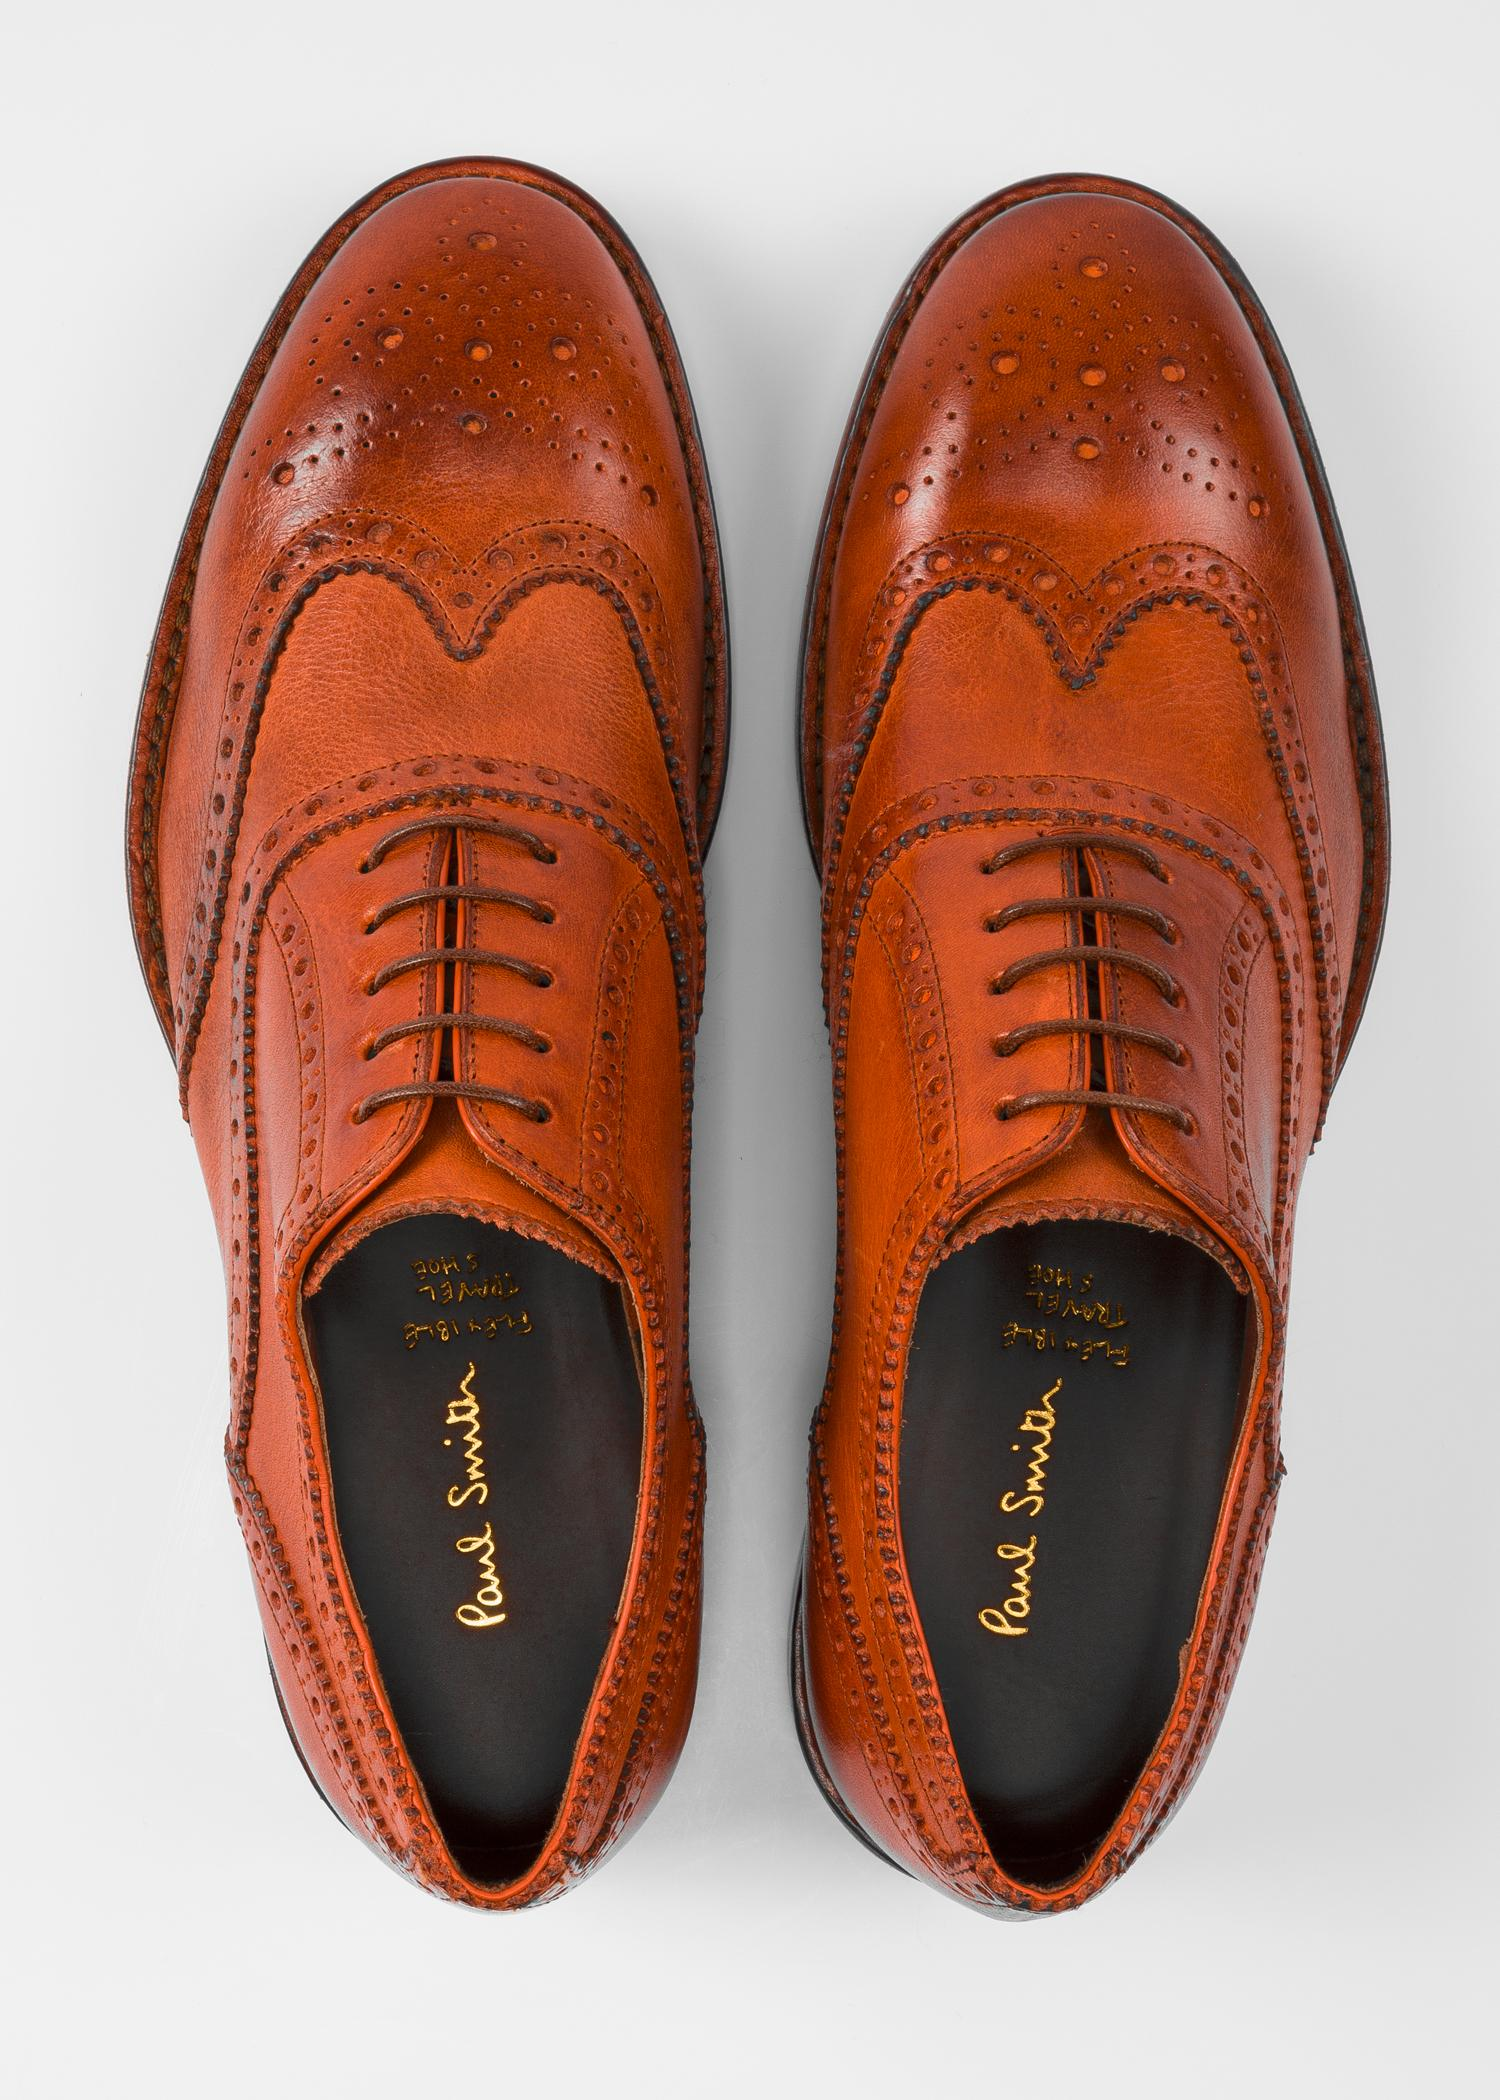 f4b2fba8dbc Paul Smith Tan Leather 'munro' Flexible Travel Brogues in Brown for ...